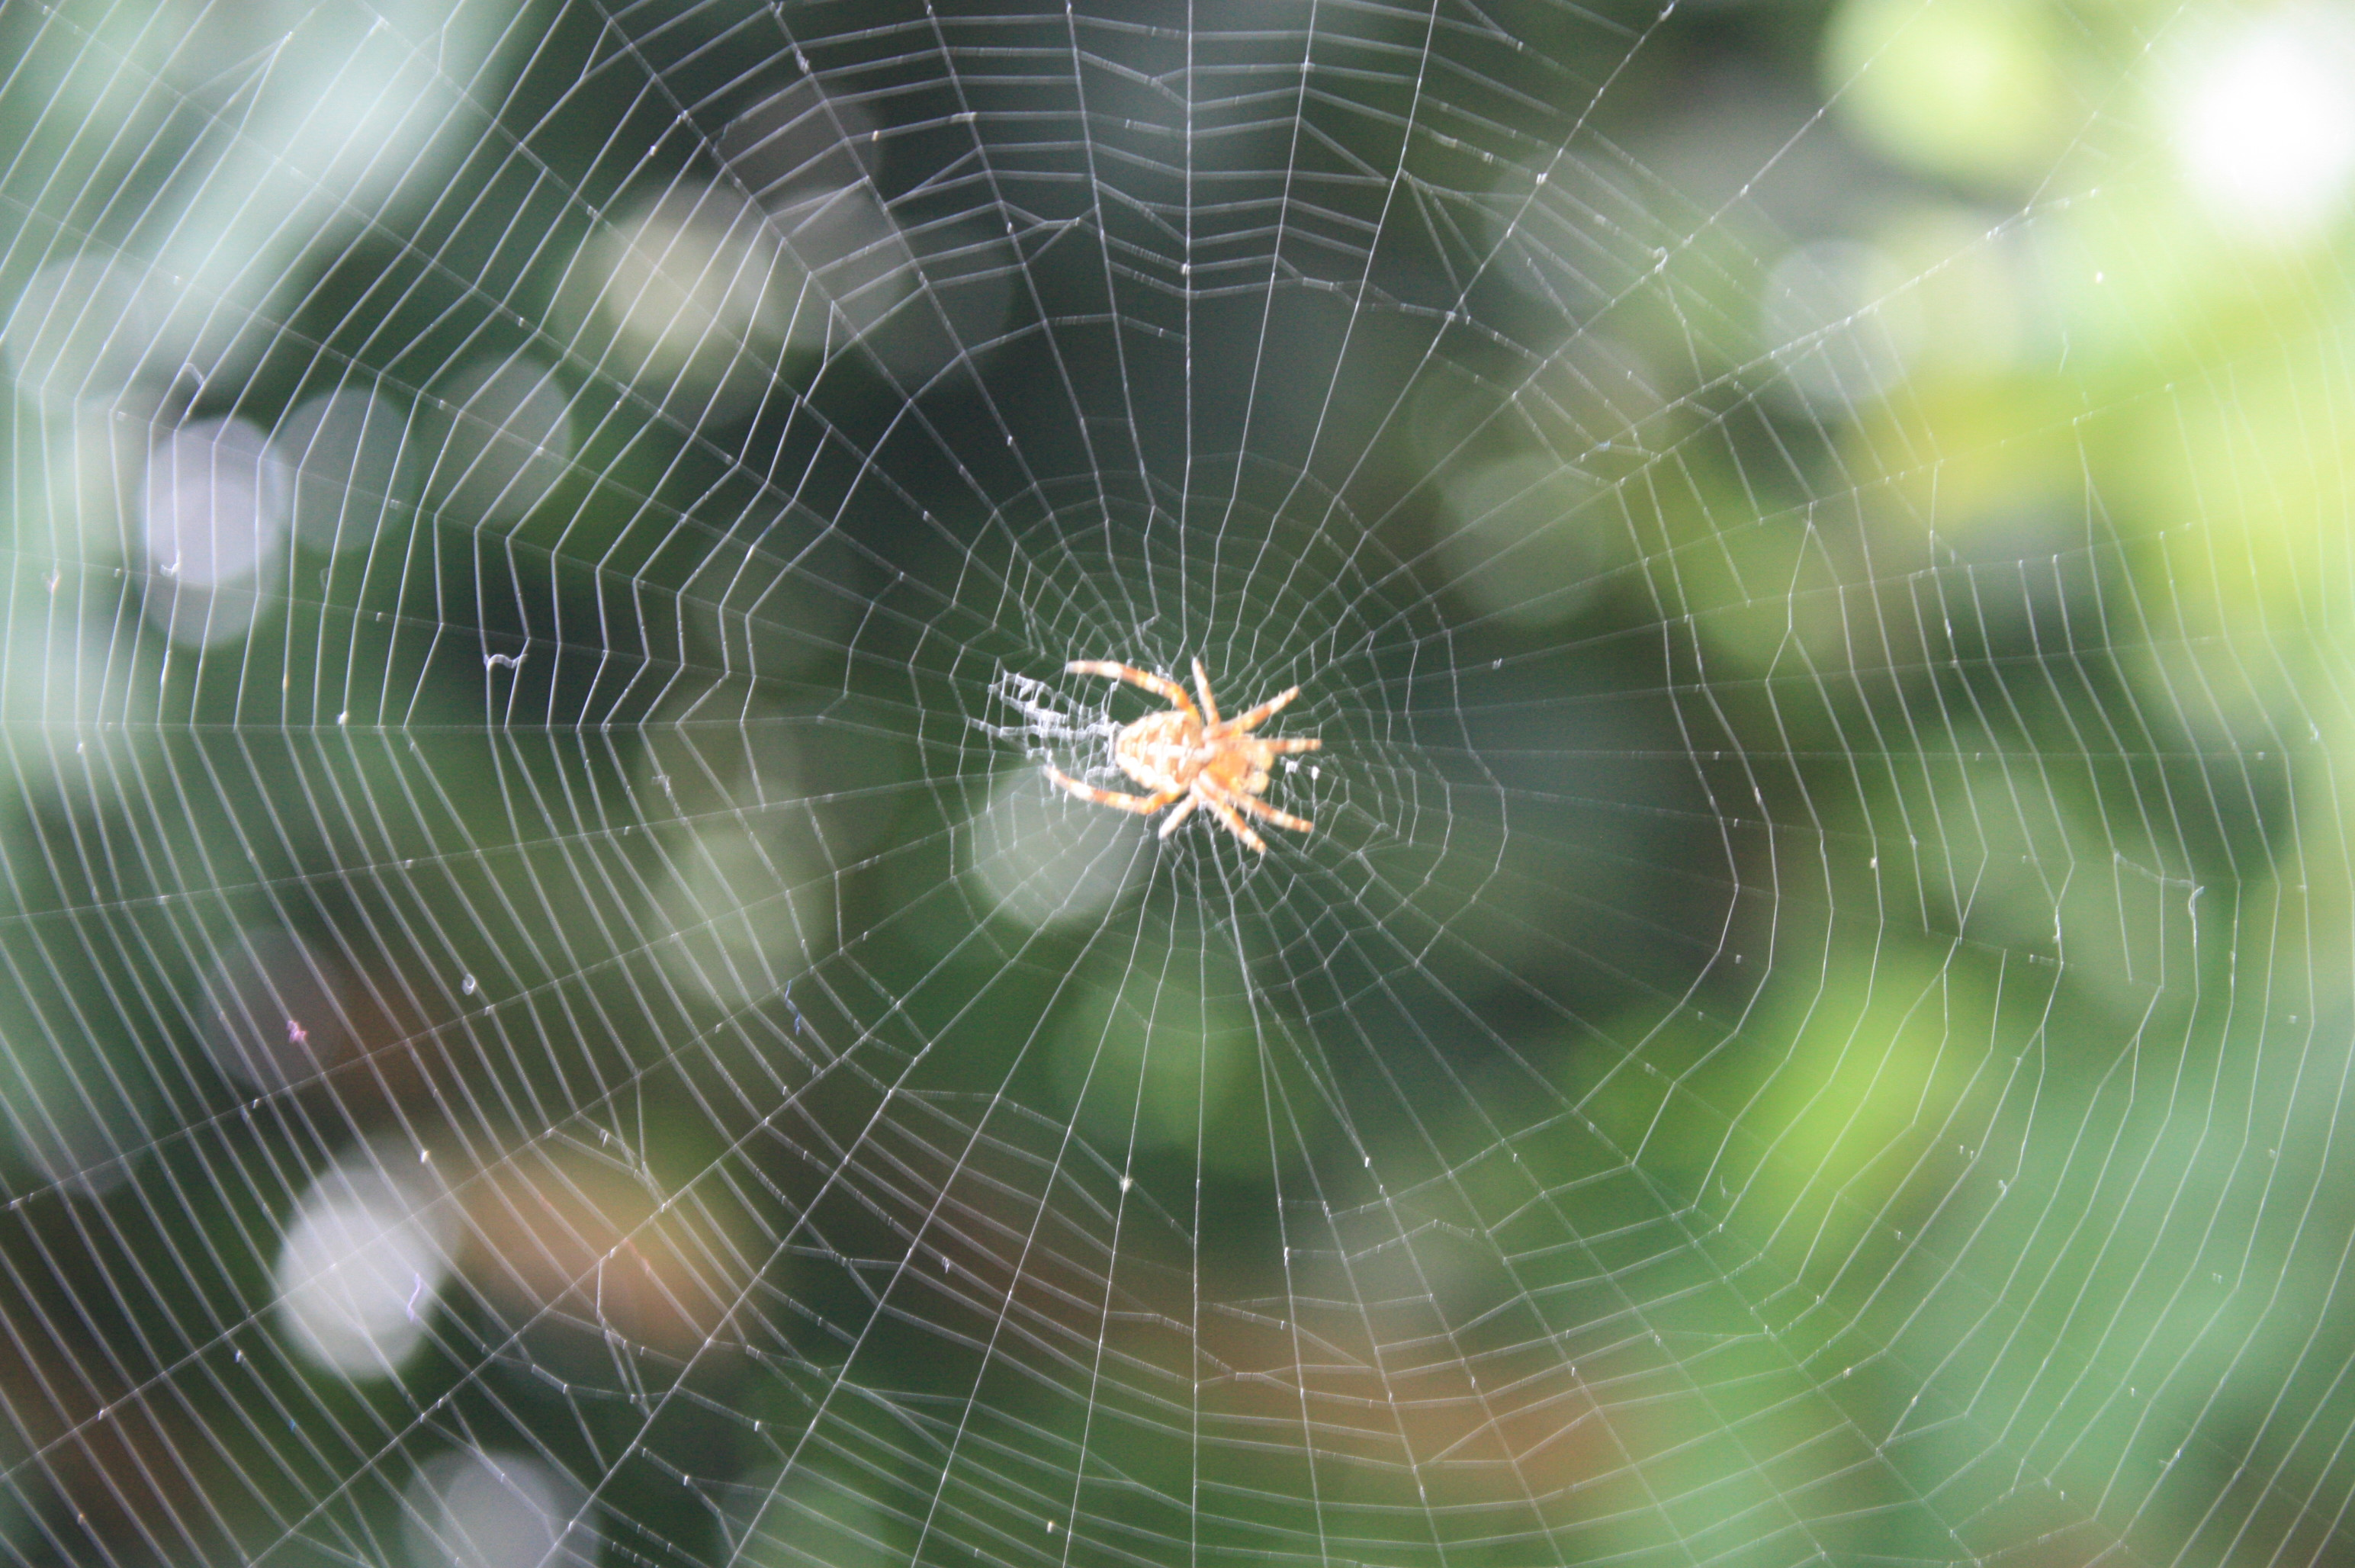 Spiders Seem To Be Getting More >> Spider Web Wikipedia